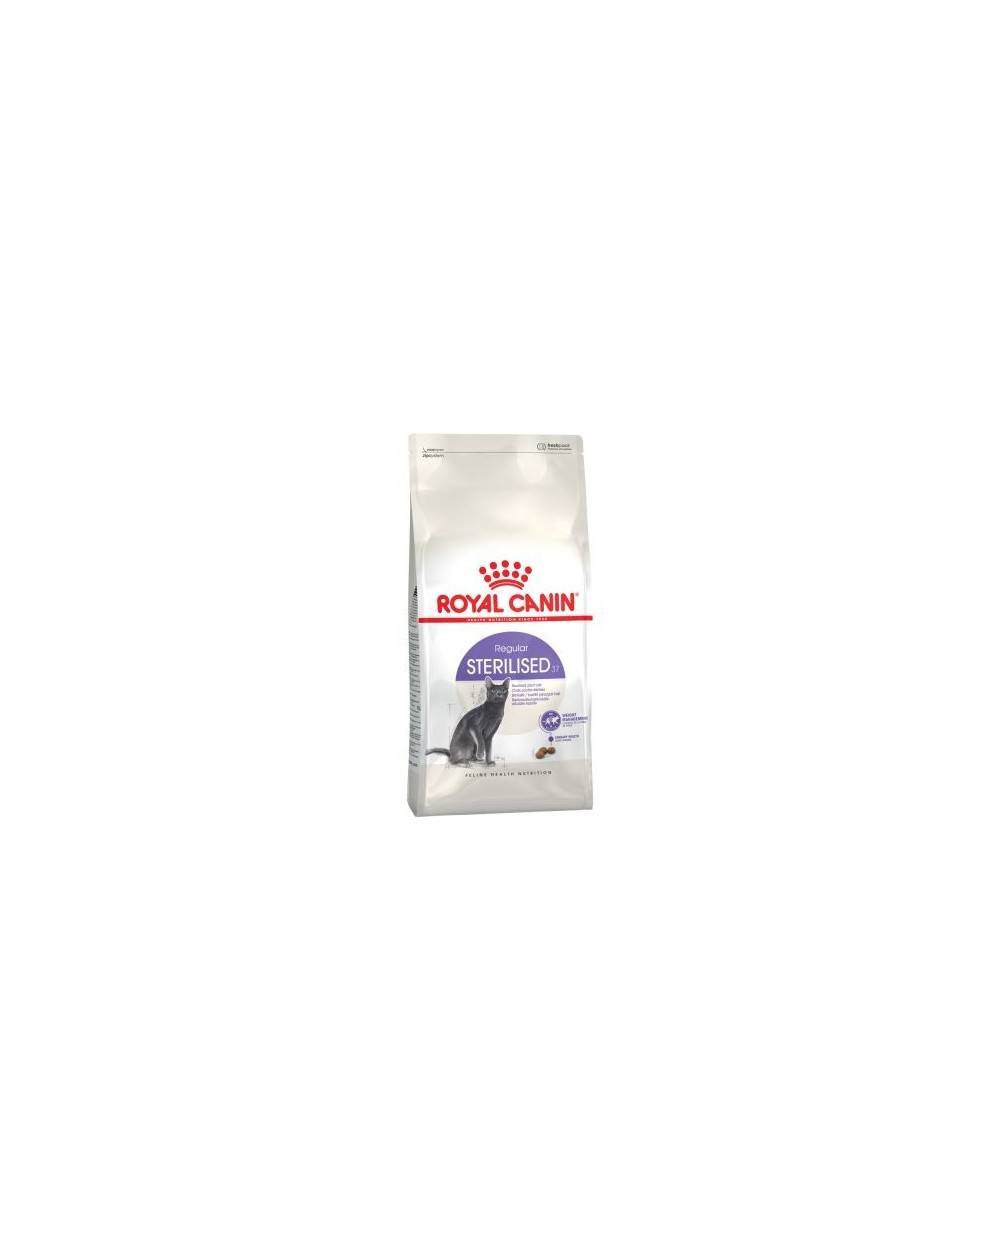 Royal Canin Feline Health Nutrition - Sterilised